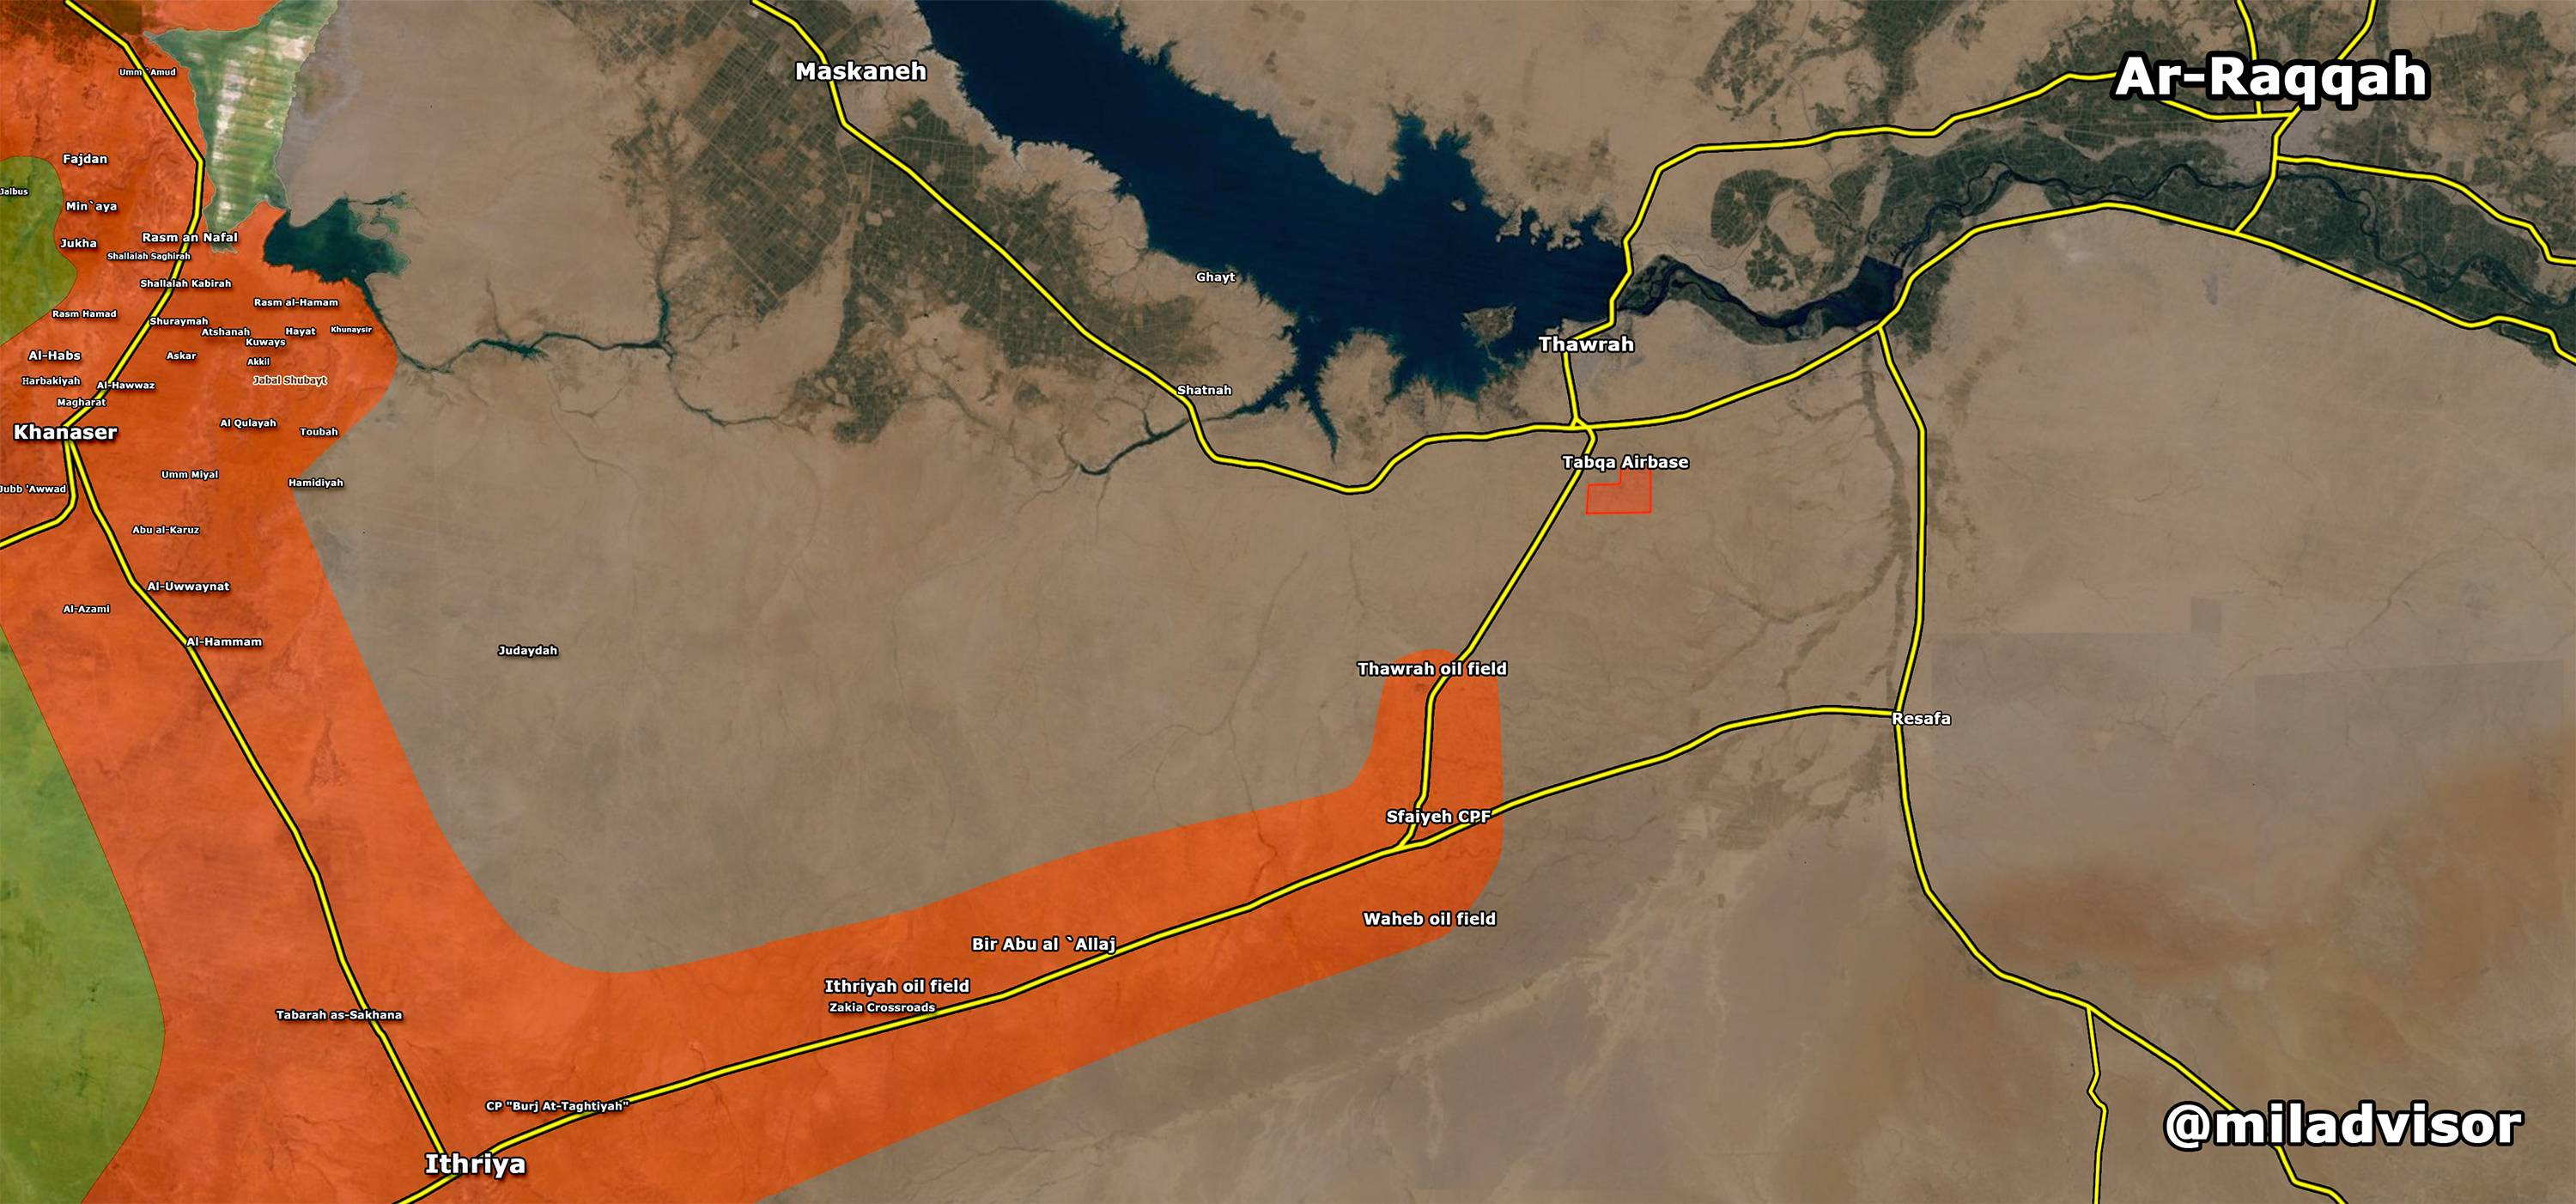 ISIS Retakes Sfaiyeh Oil Field, Pushes Government Forces Back